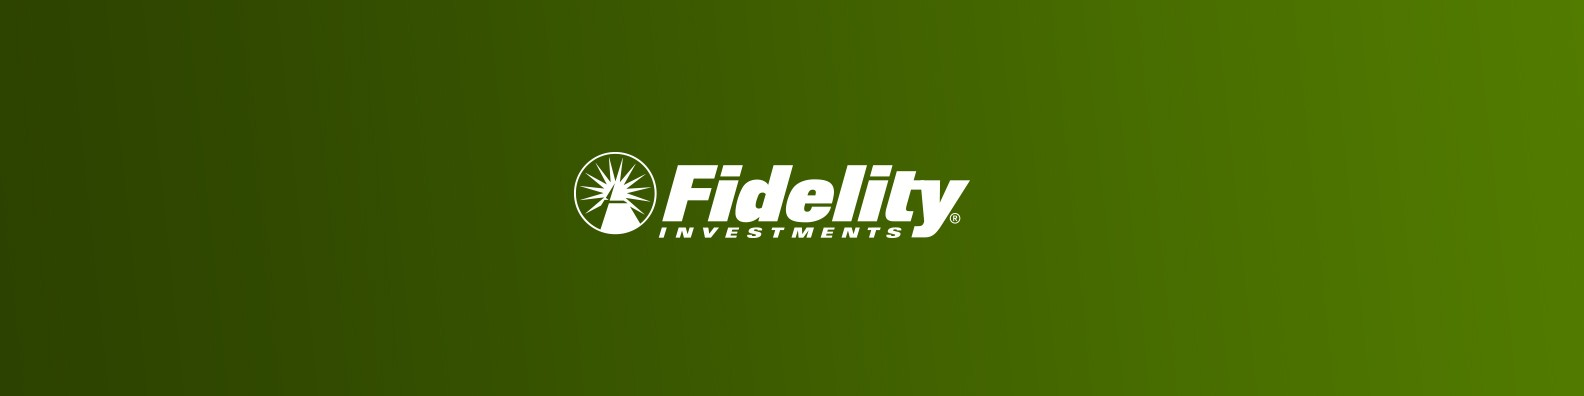 Roles at fidelity investments aminvestment bank berhad rating